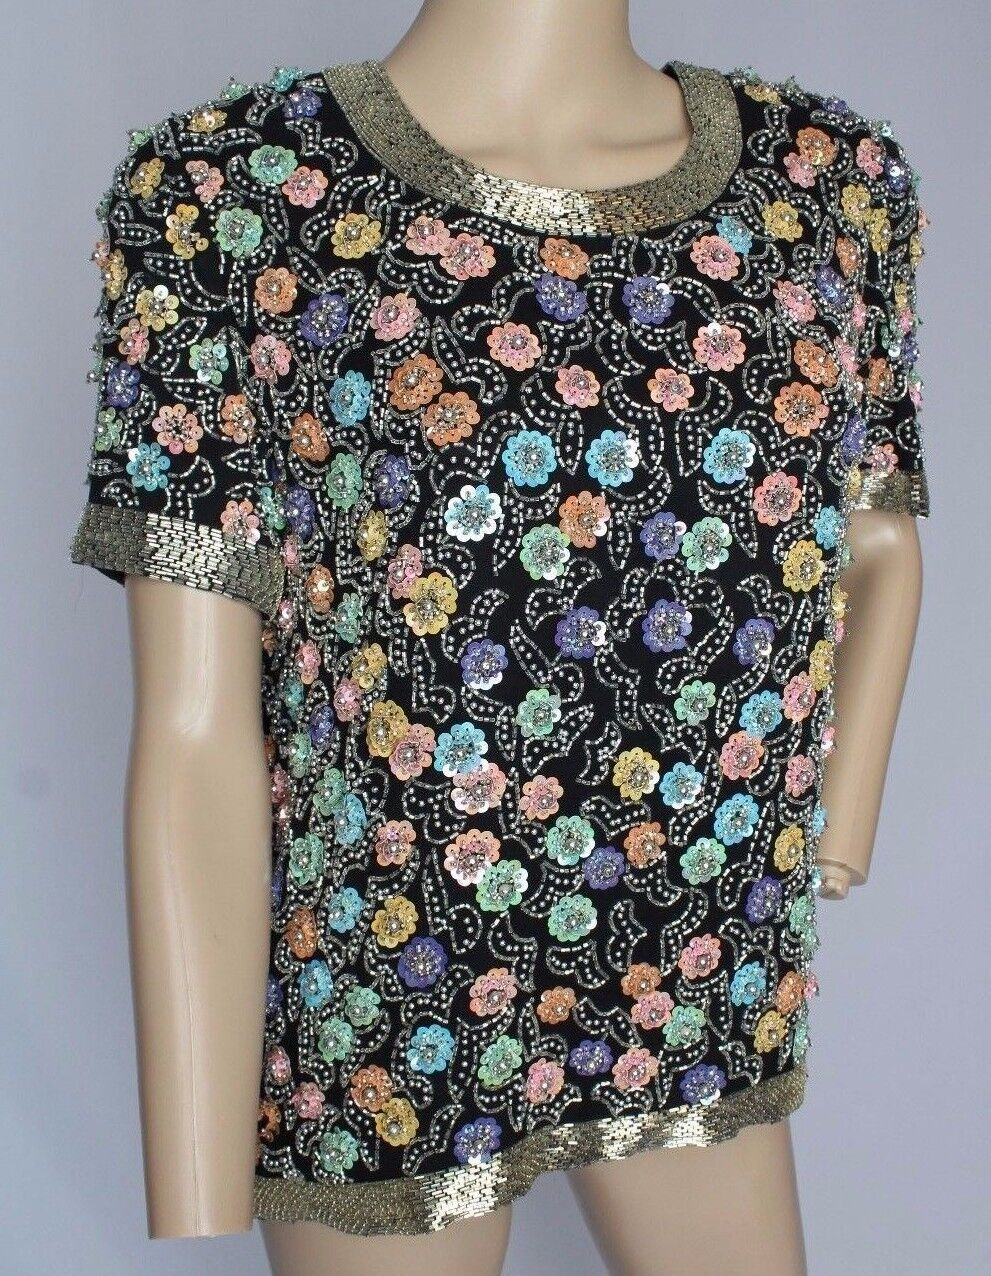 VTG schwarztie Oleg Cassini Sequin Beaded Flower Trophy Dress Top Blouse S